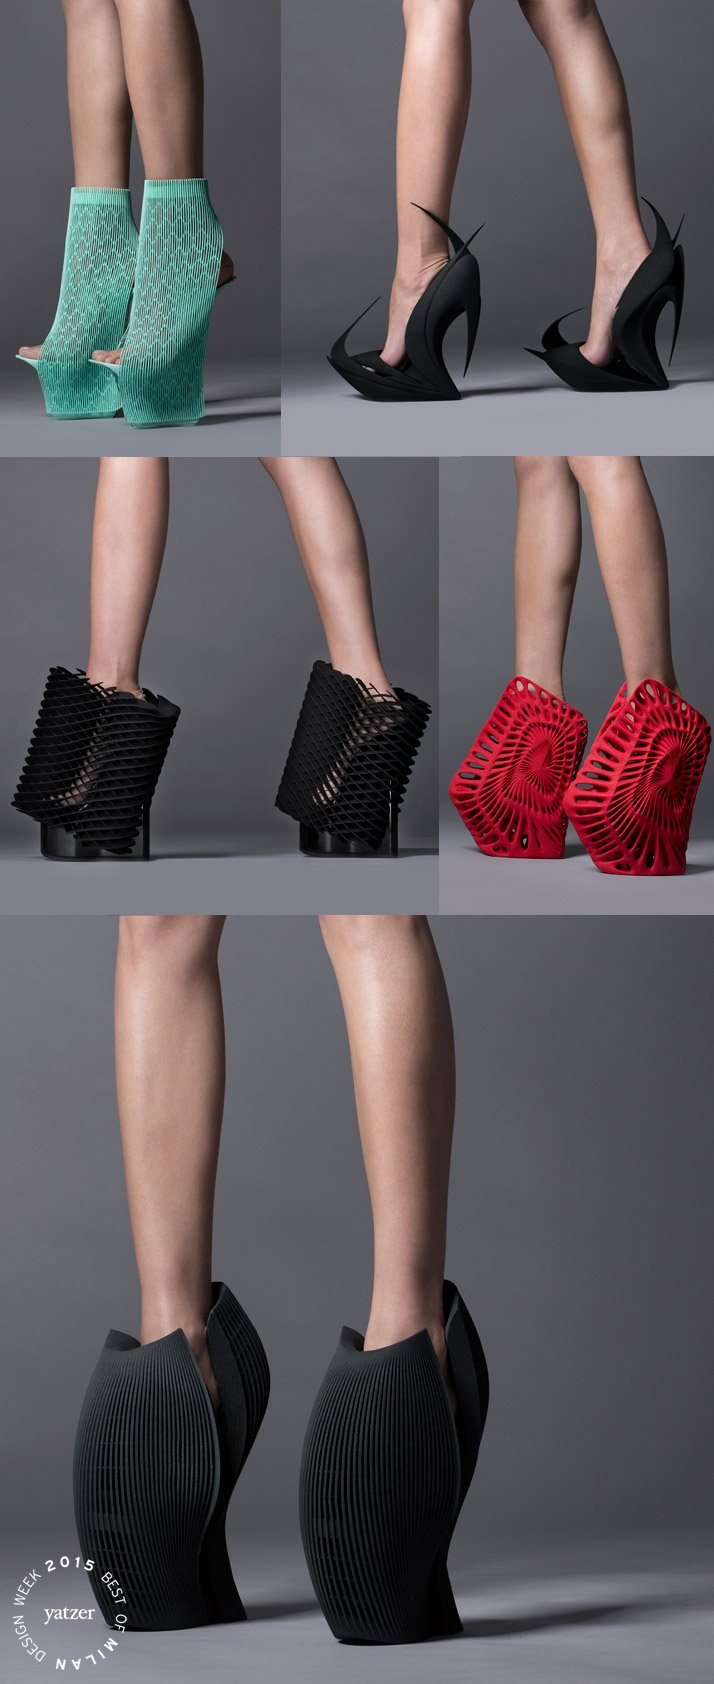 The Re-Inventing Shoes project by United Nude and 3D systems. Ben van Berkel (UNStudio), Zaha Hadid, Ross Lovegrove, Fernando Romero and Michael Young are exploring and challenging 3D printing technology bydesigning 3D printed ladies high heels.